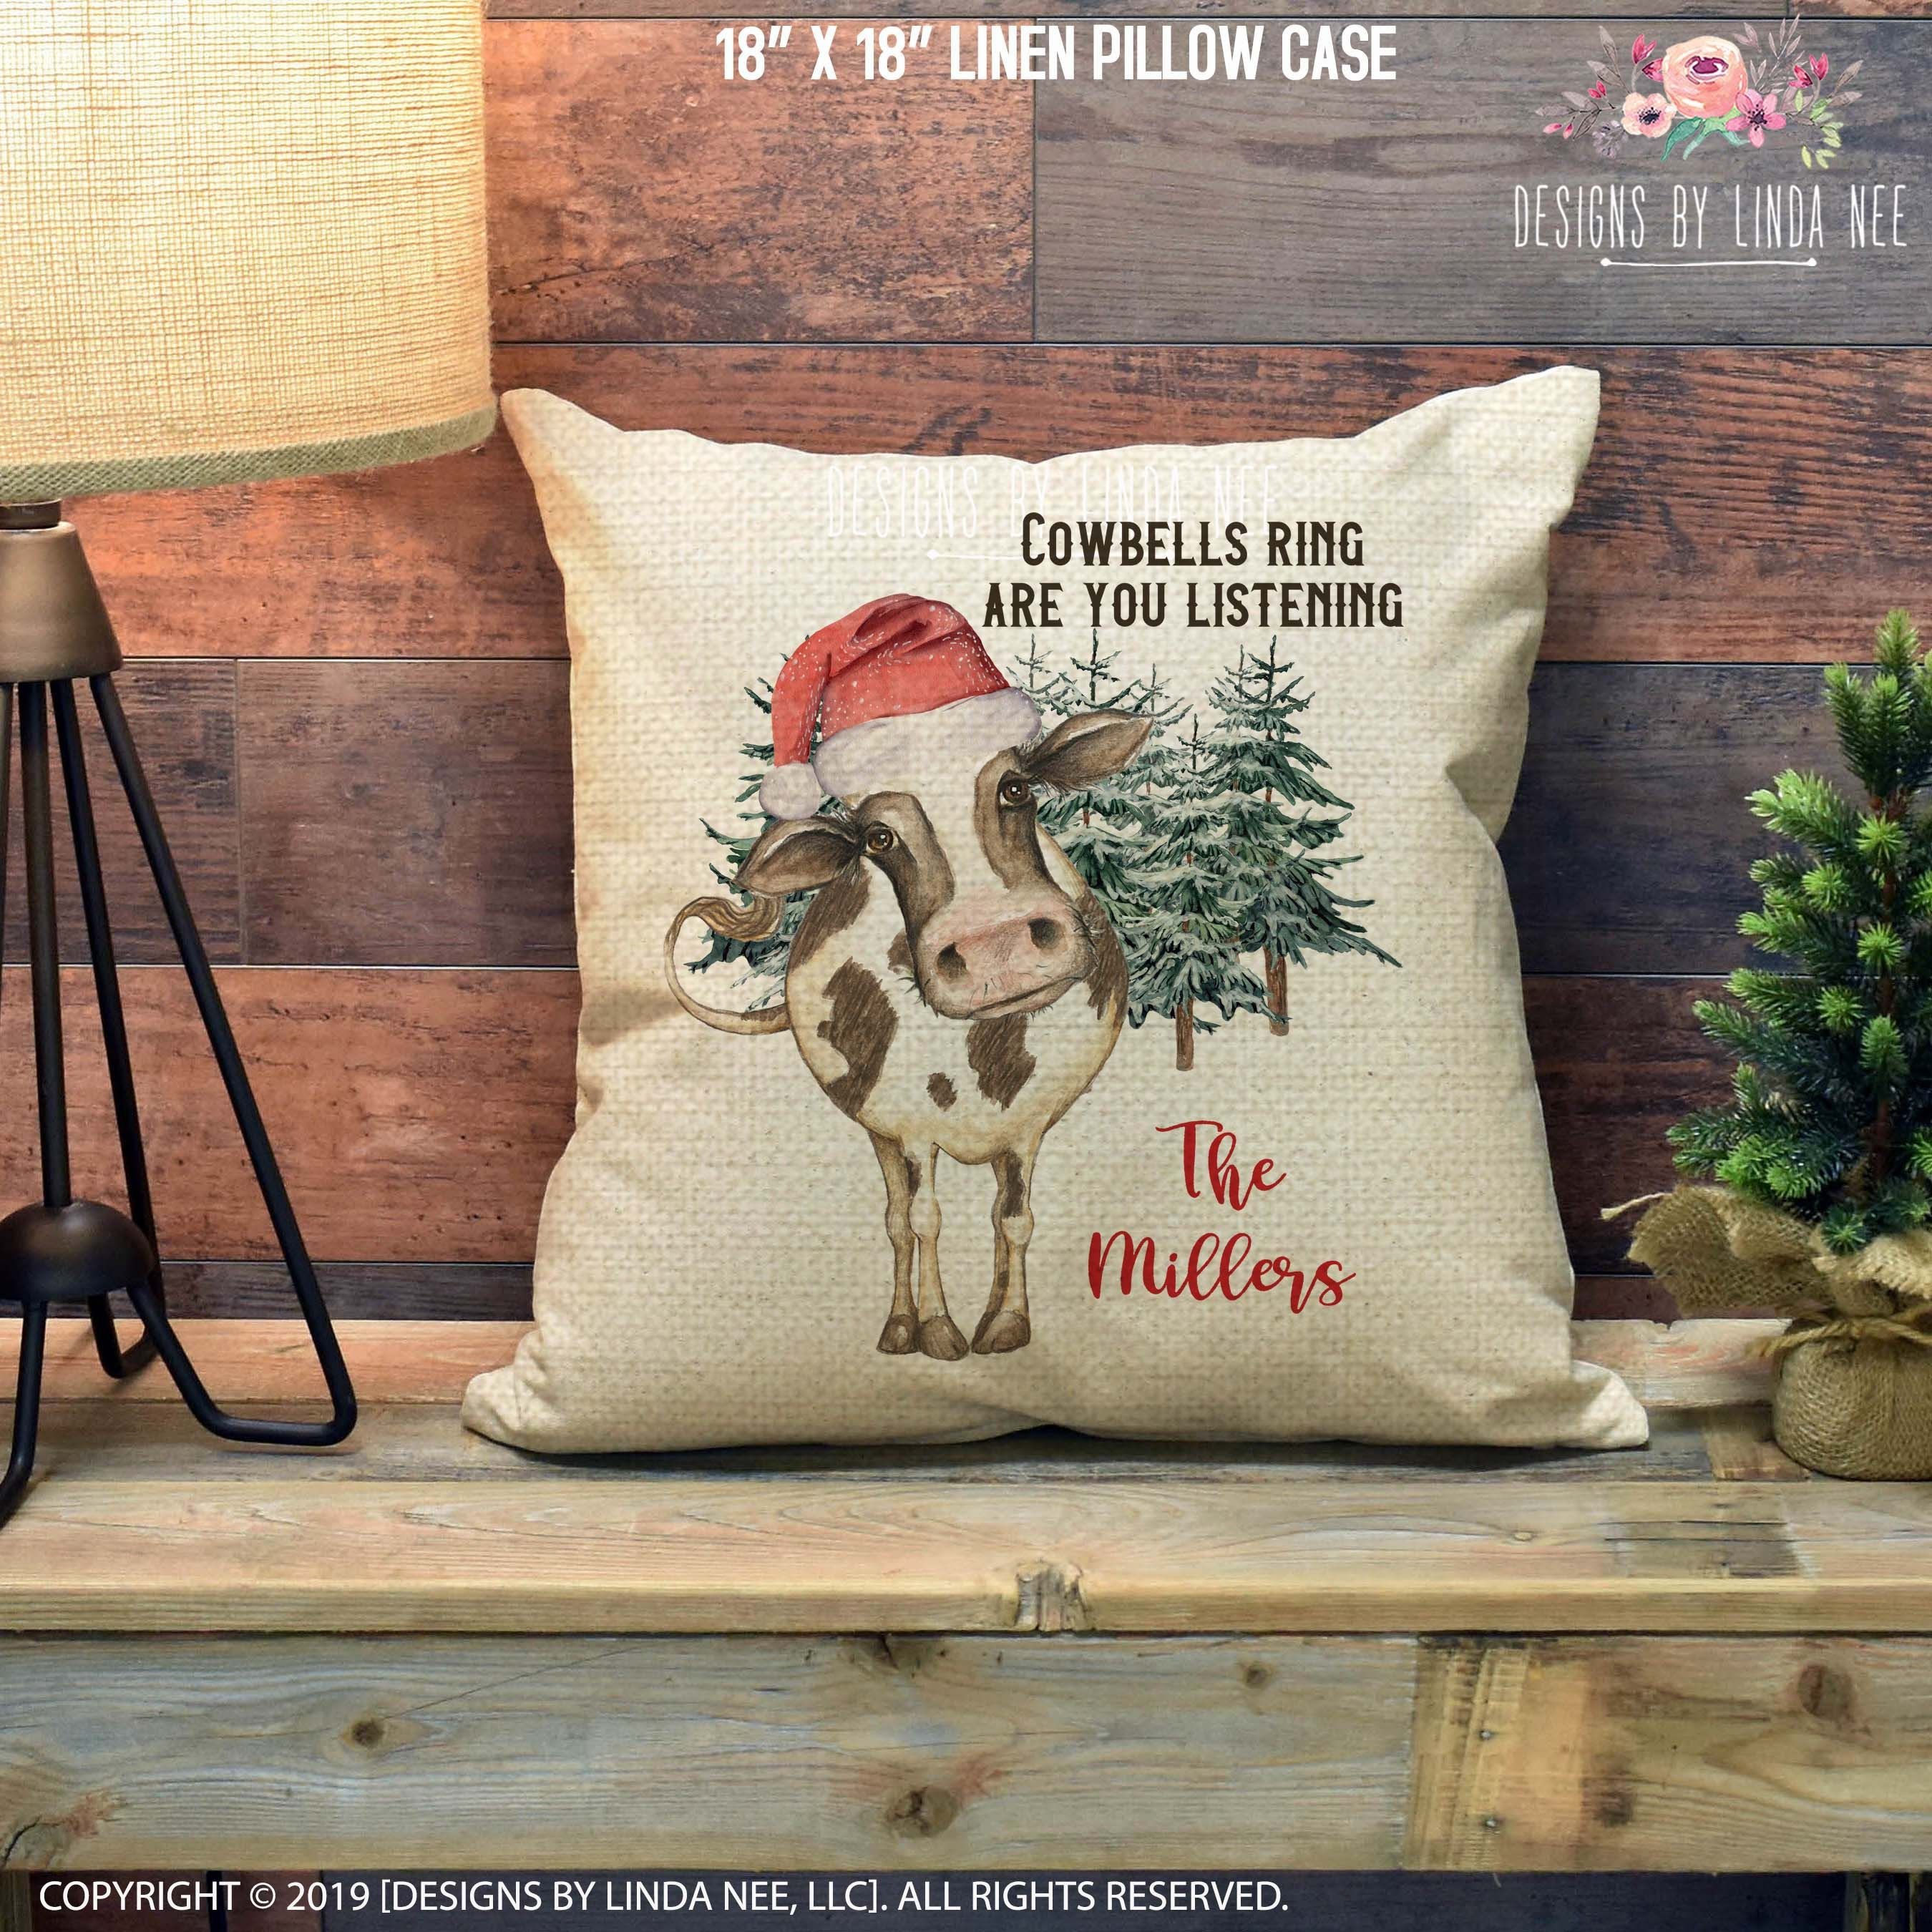 Personalized Cow Pillow Christmas Pillow Cover Cowbells Ring Etsy In 2020 Christmas Pillow Christmas Pillow Covers Pillows